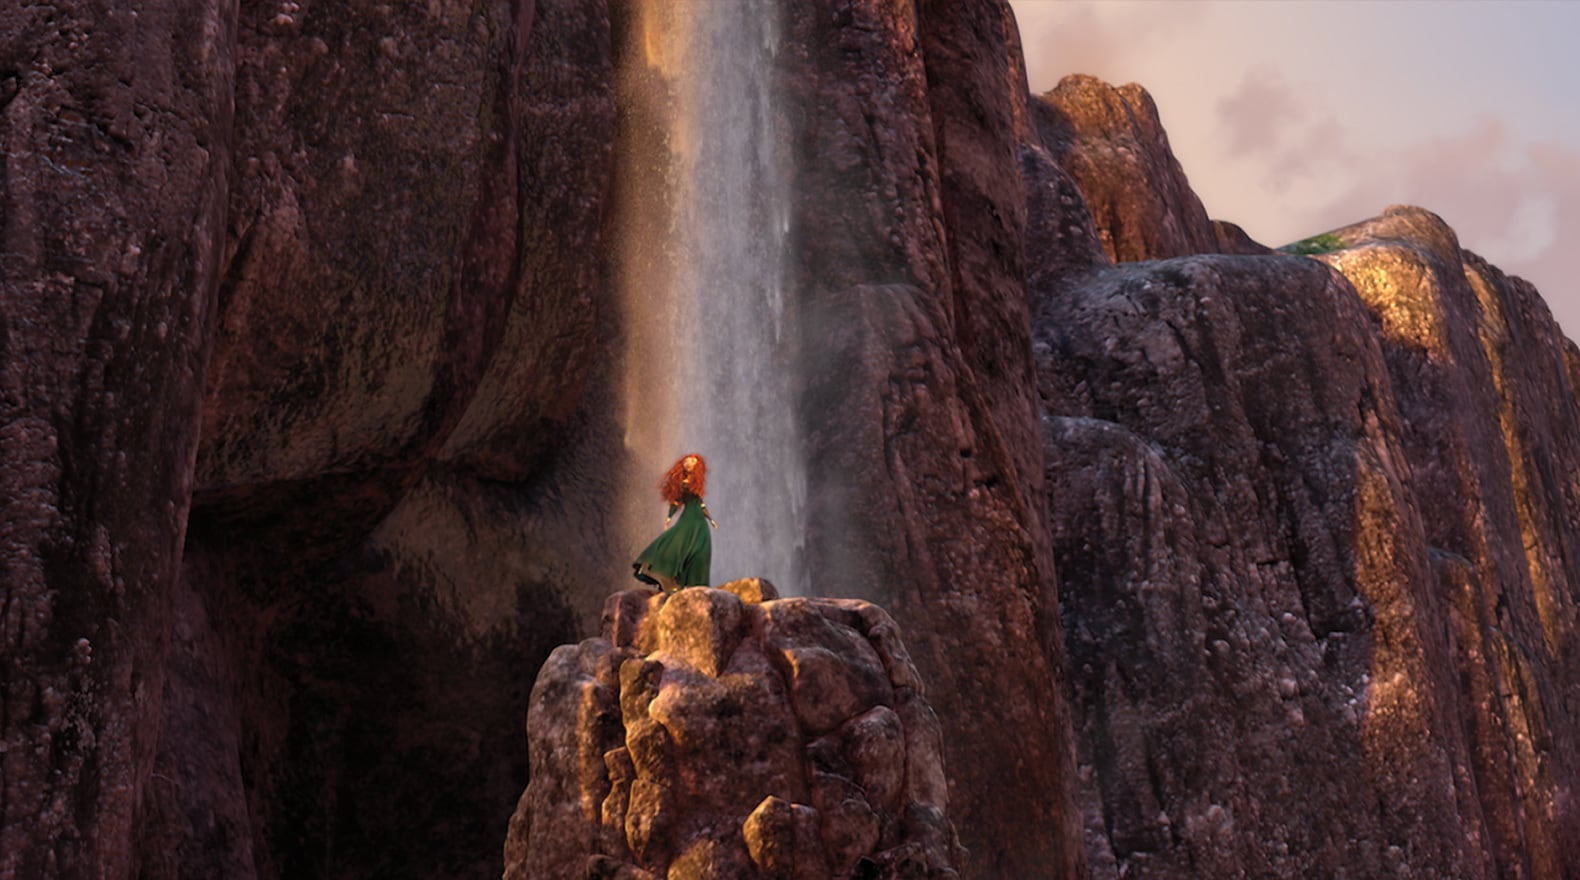 Merida, voiced by Kelly Macdonald, standing on a rock in front of the Fire Falls in the movie Brave